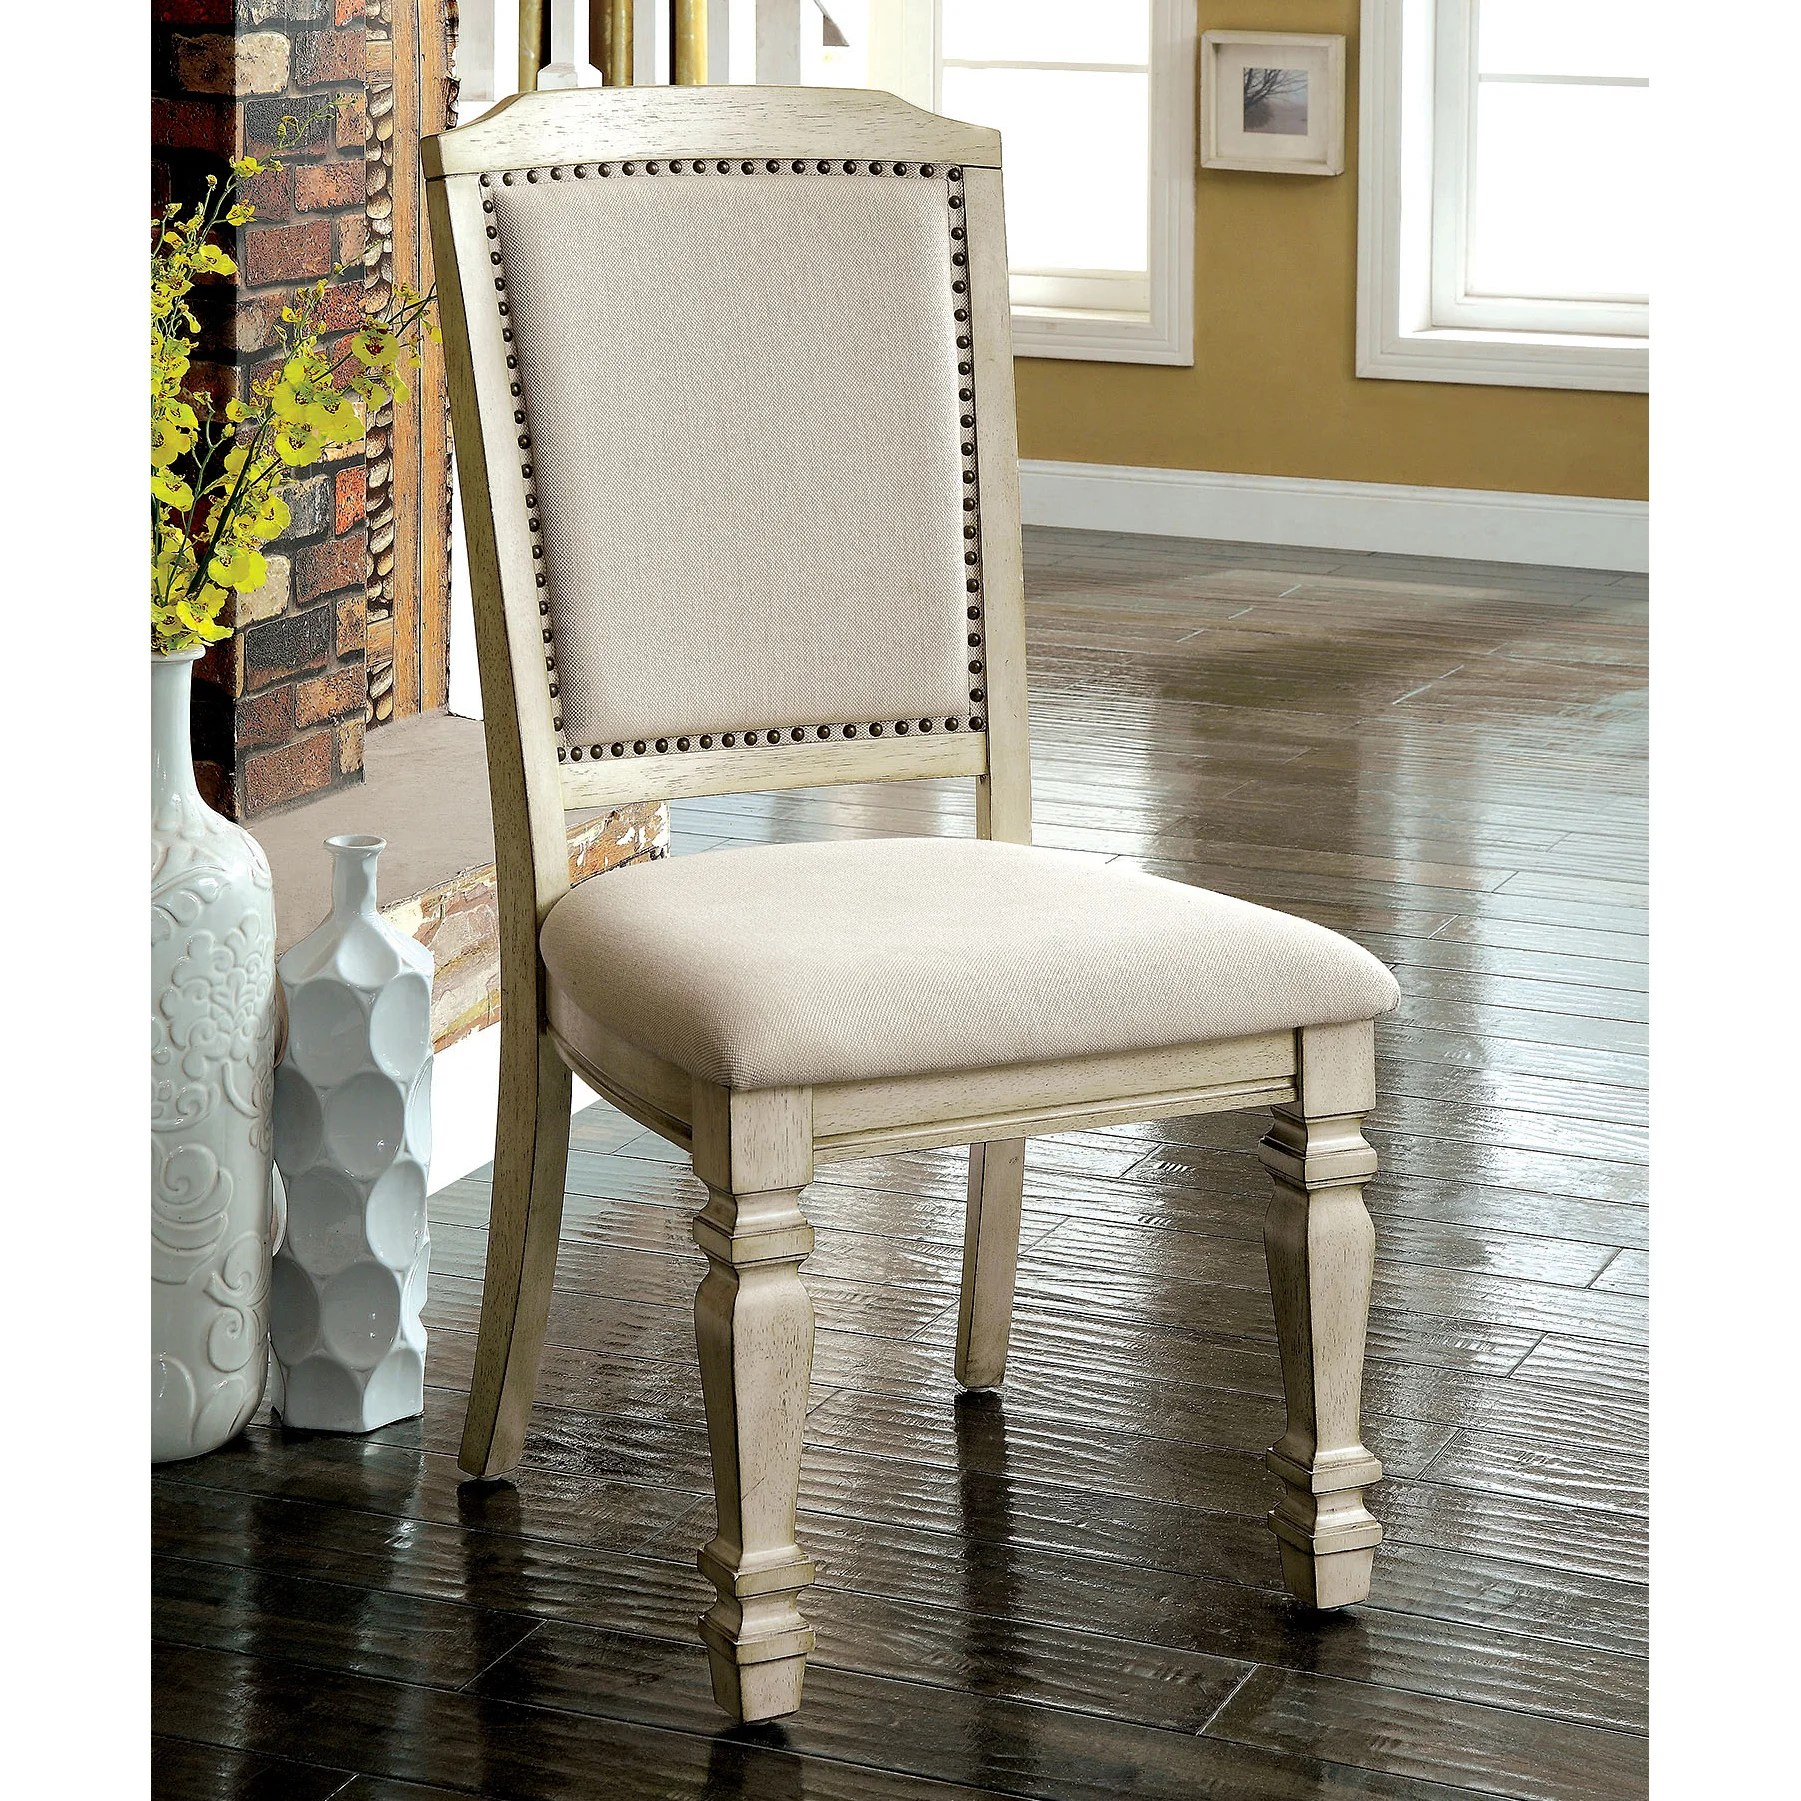 Antique White Dining Chairs Caplin Vintage Antique White Dining Chair Set Of 2 By Foa